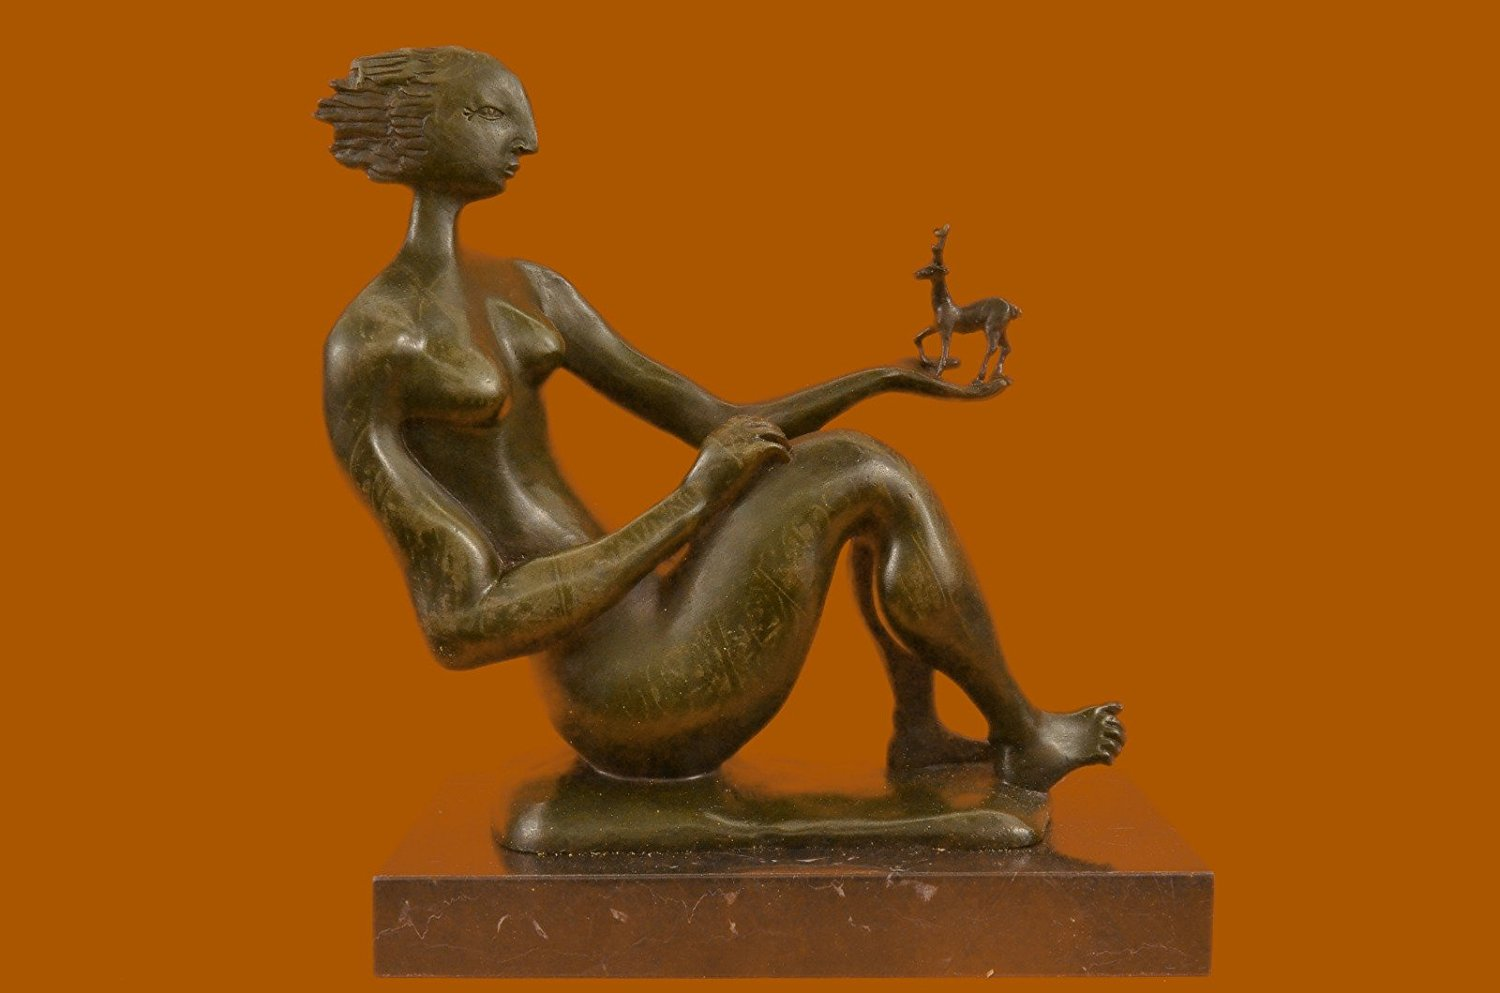 ...Handmade...European Bronze Sculpture Signed Abstract ative Female Marble Base Modern (DS-475-UK) Bronze Sculpture Statues Figurine Nude Office & Home Décor Collectibles Sale Deal Gifts